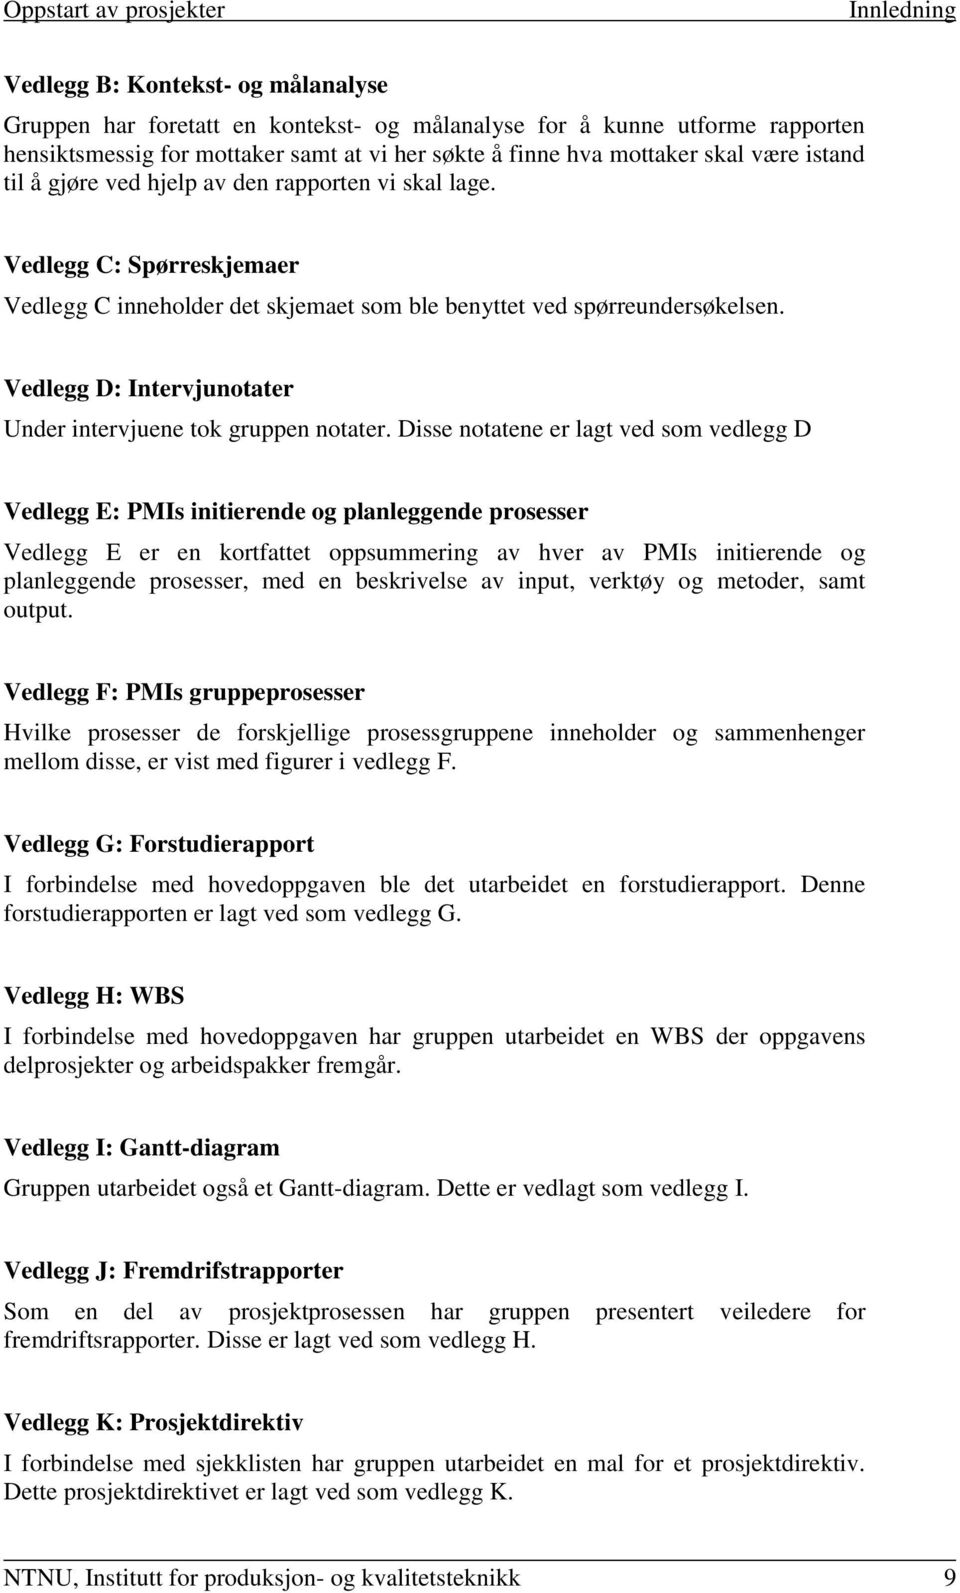 Vedlegg D: Intervjunotater Under intervjuene tok gruppen notater.